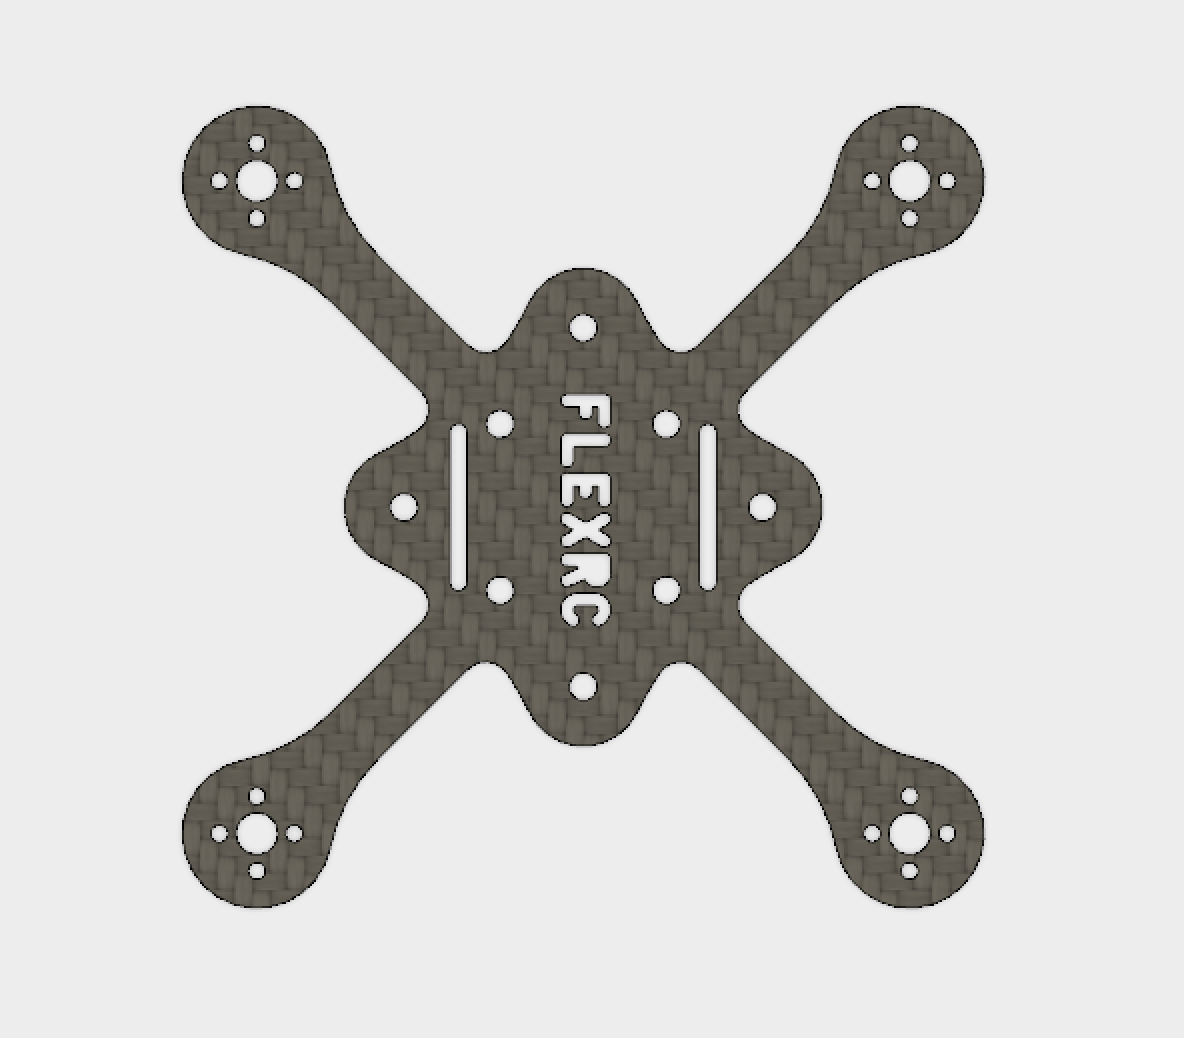 Main X Plate with Motor mounts for 2.5